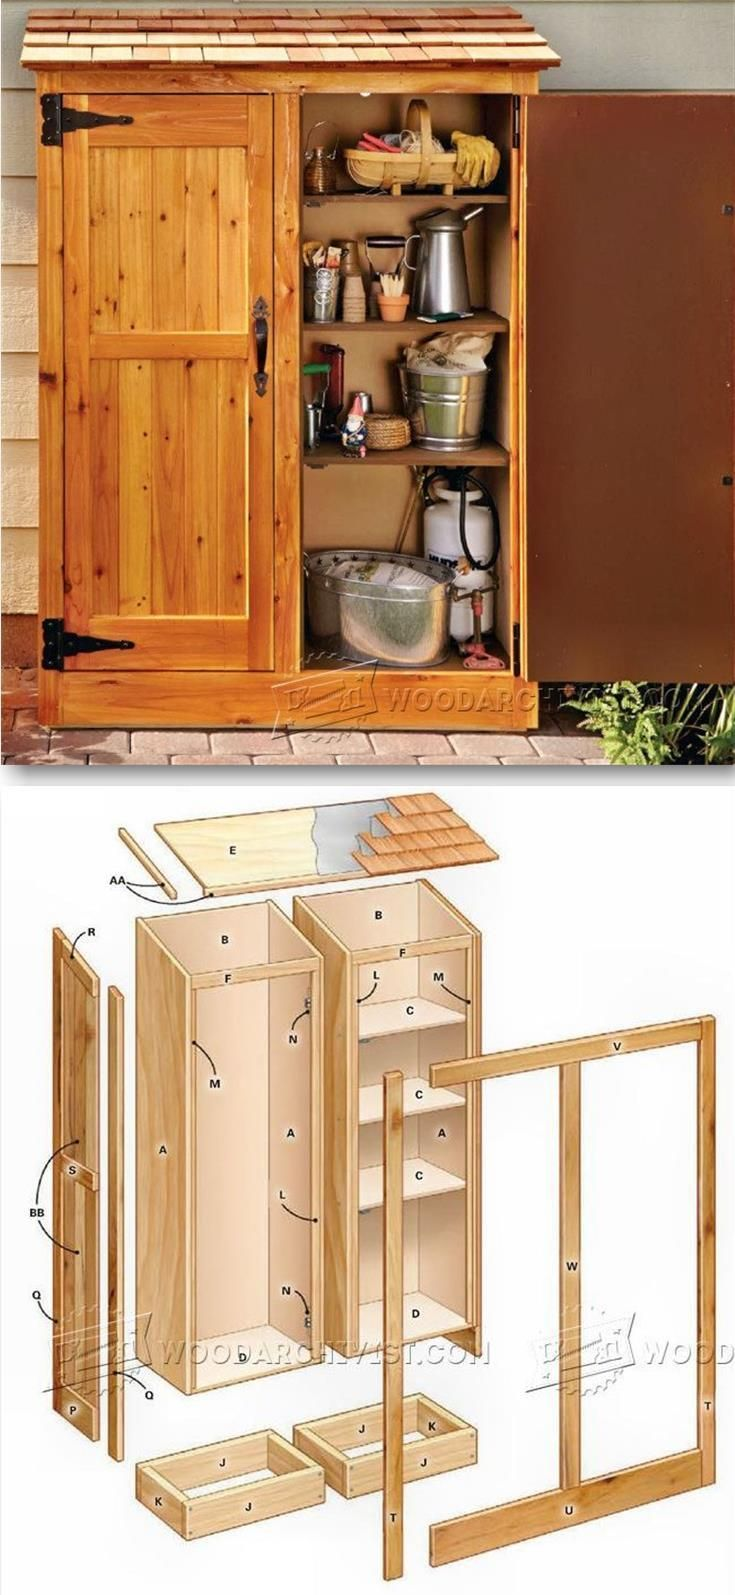 581 best Decks   Sheds images on Pinterest   Storage sheds  Gardening and  Lean to shed plans. 581 best Decks   Sheds images on Pinterest   Storage sheds